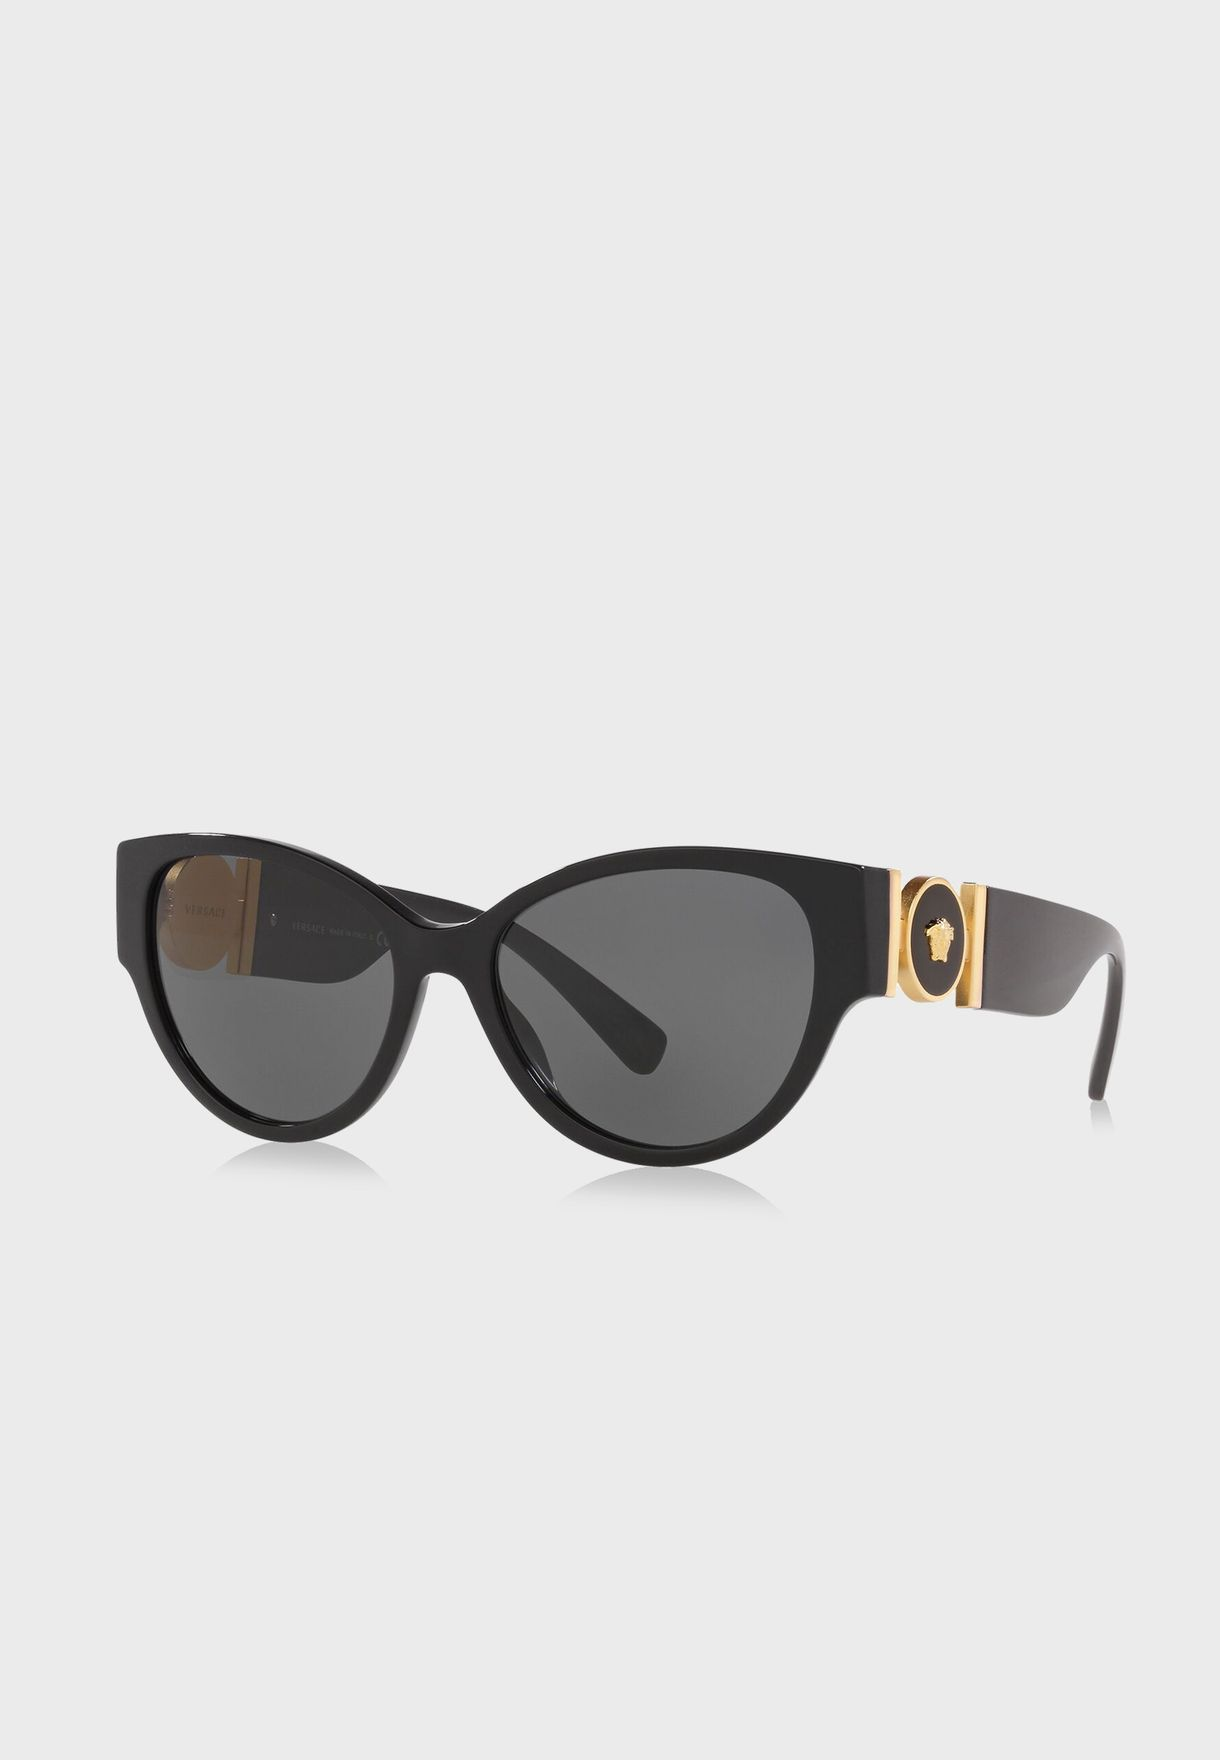 0VE4368 Cat Eye Sunglasses